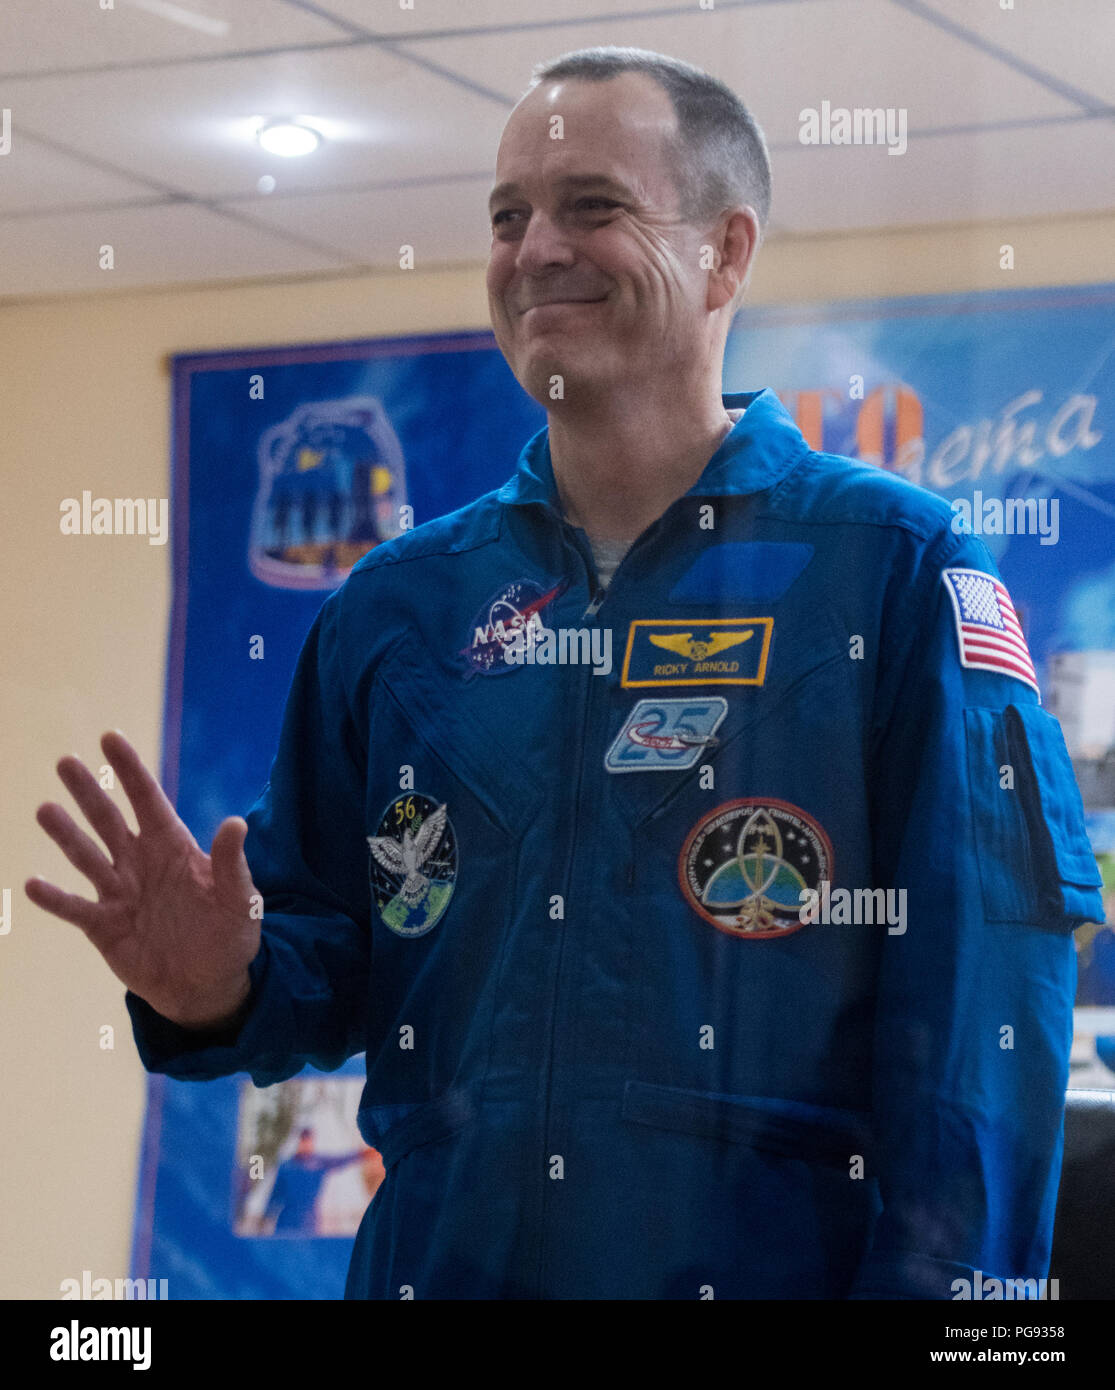 Expedition 55 flight engineer Ricky Arnold is seen in quarantine, behind glass, during a press conference, Tuesday, March 20, 2018 at the Cosmonaut Hotel in Baikonur, Kazakhstan. Arnold and his fellow Expedition 55 crew members Oleg Artemyev of Roscosmos and flight engineer Drew Feustel of NASA are scheduled to launch to the International Space Station aboard the Soyuz MS-08 spacecraft on Wednesday, March, 21. - Stock Image